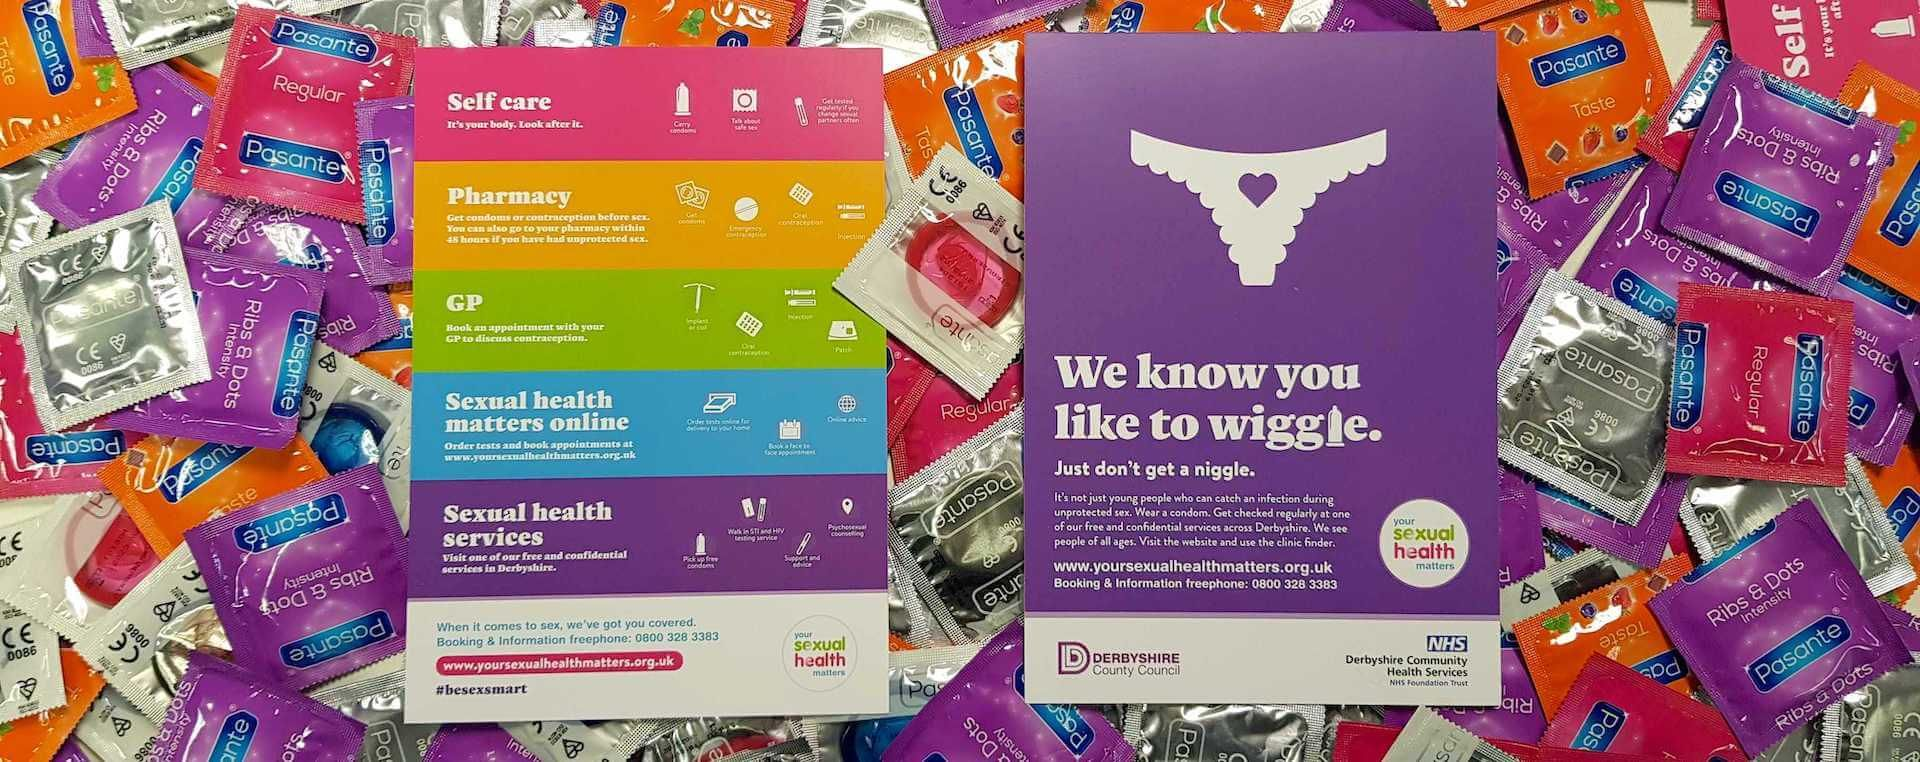 Brightly coloured flyers from the 'Your Sexual Health Matters campaign' on a pile of condoms.